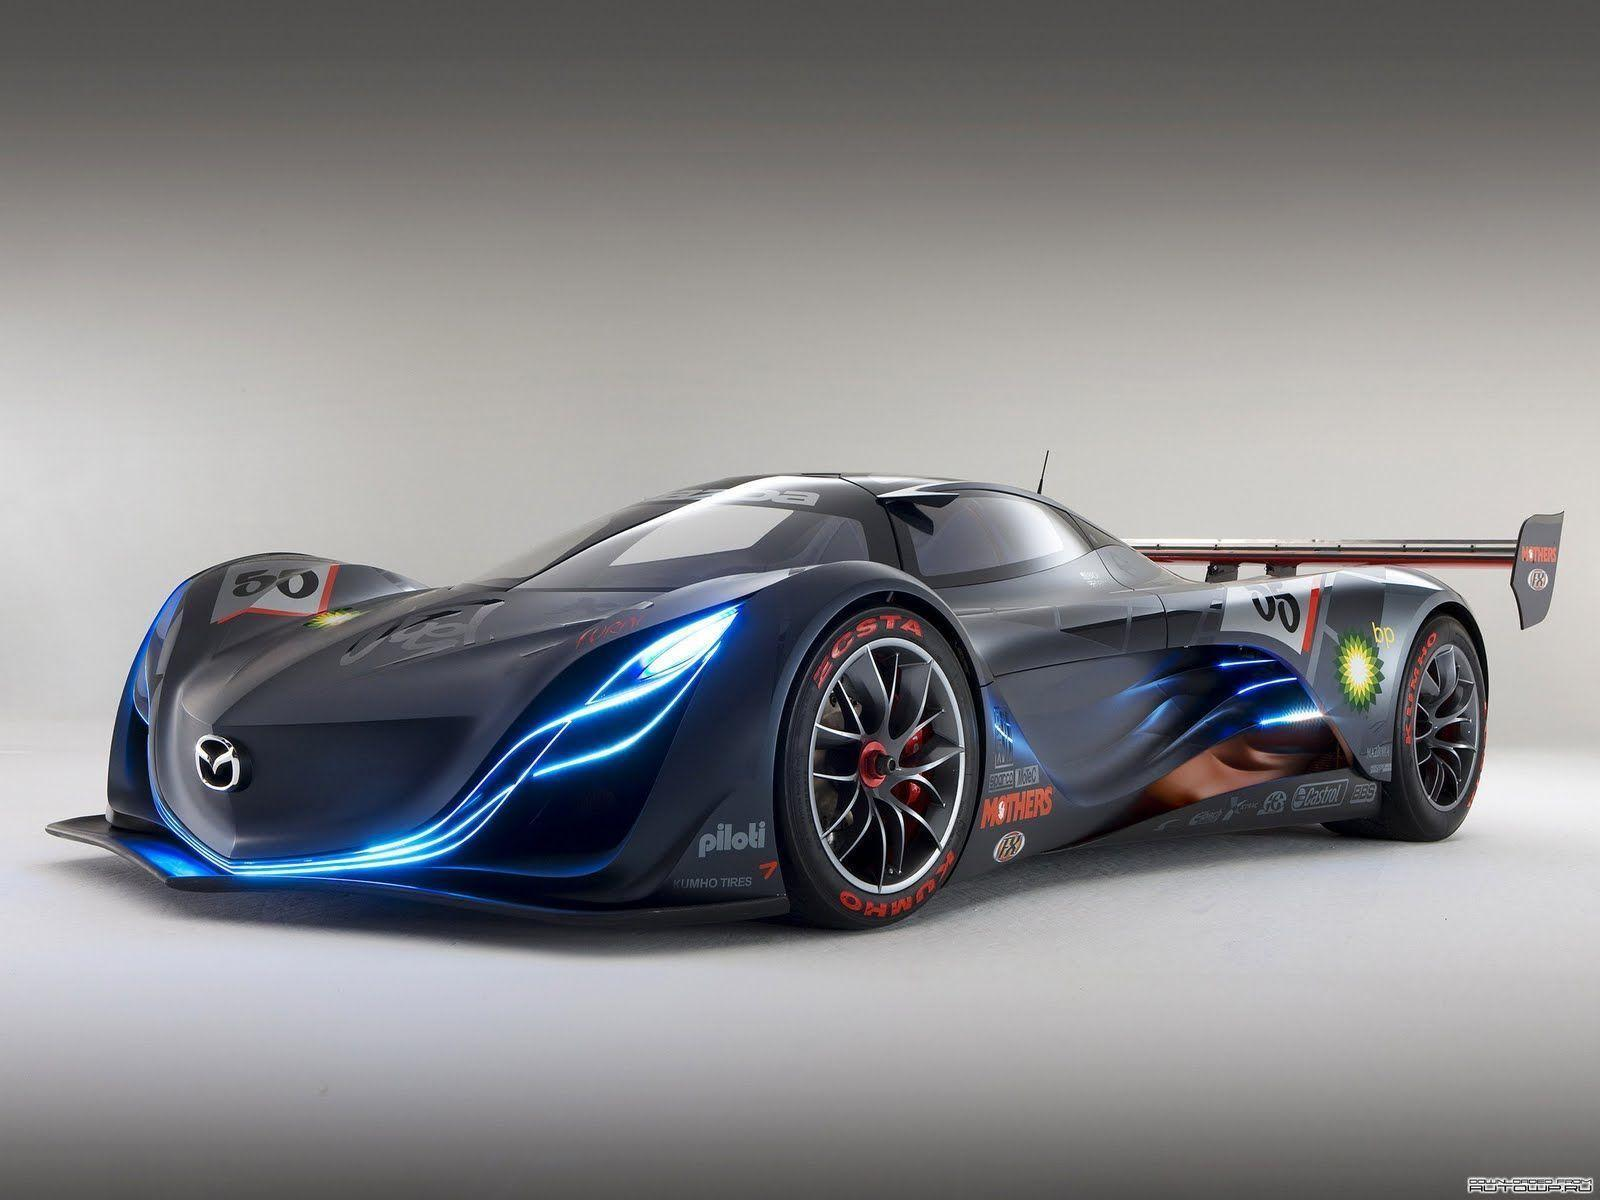 Awesome Cars Hd Wallpapers High Resolution